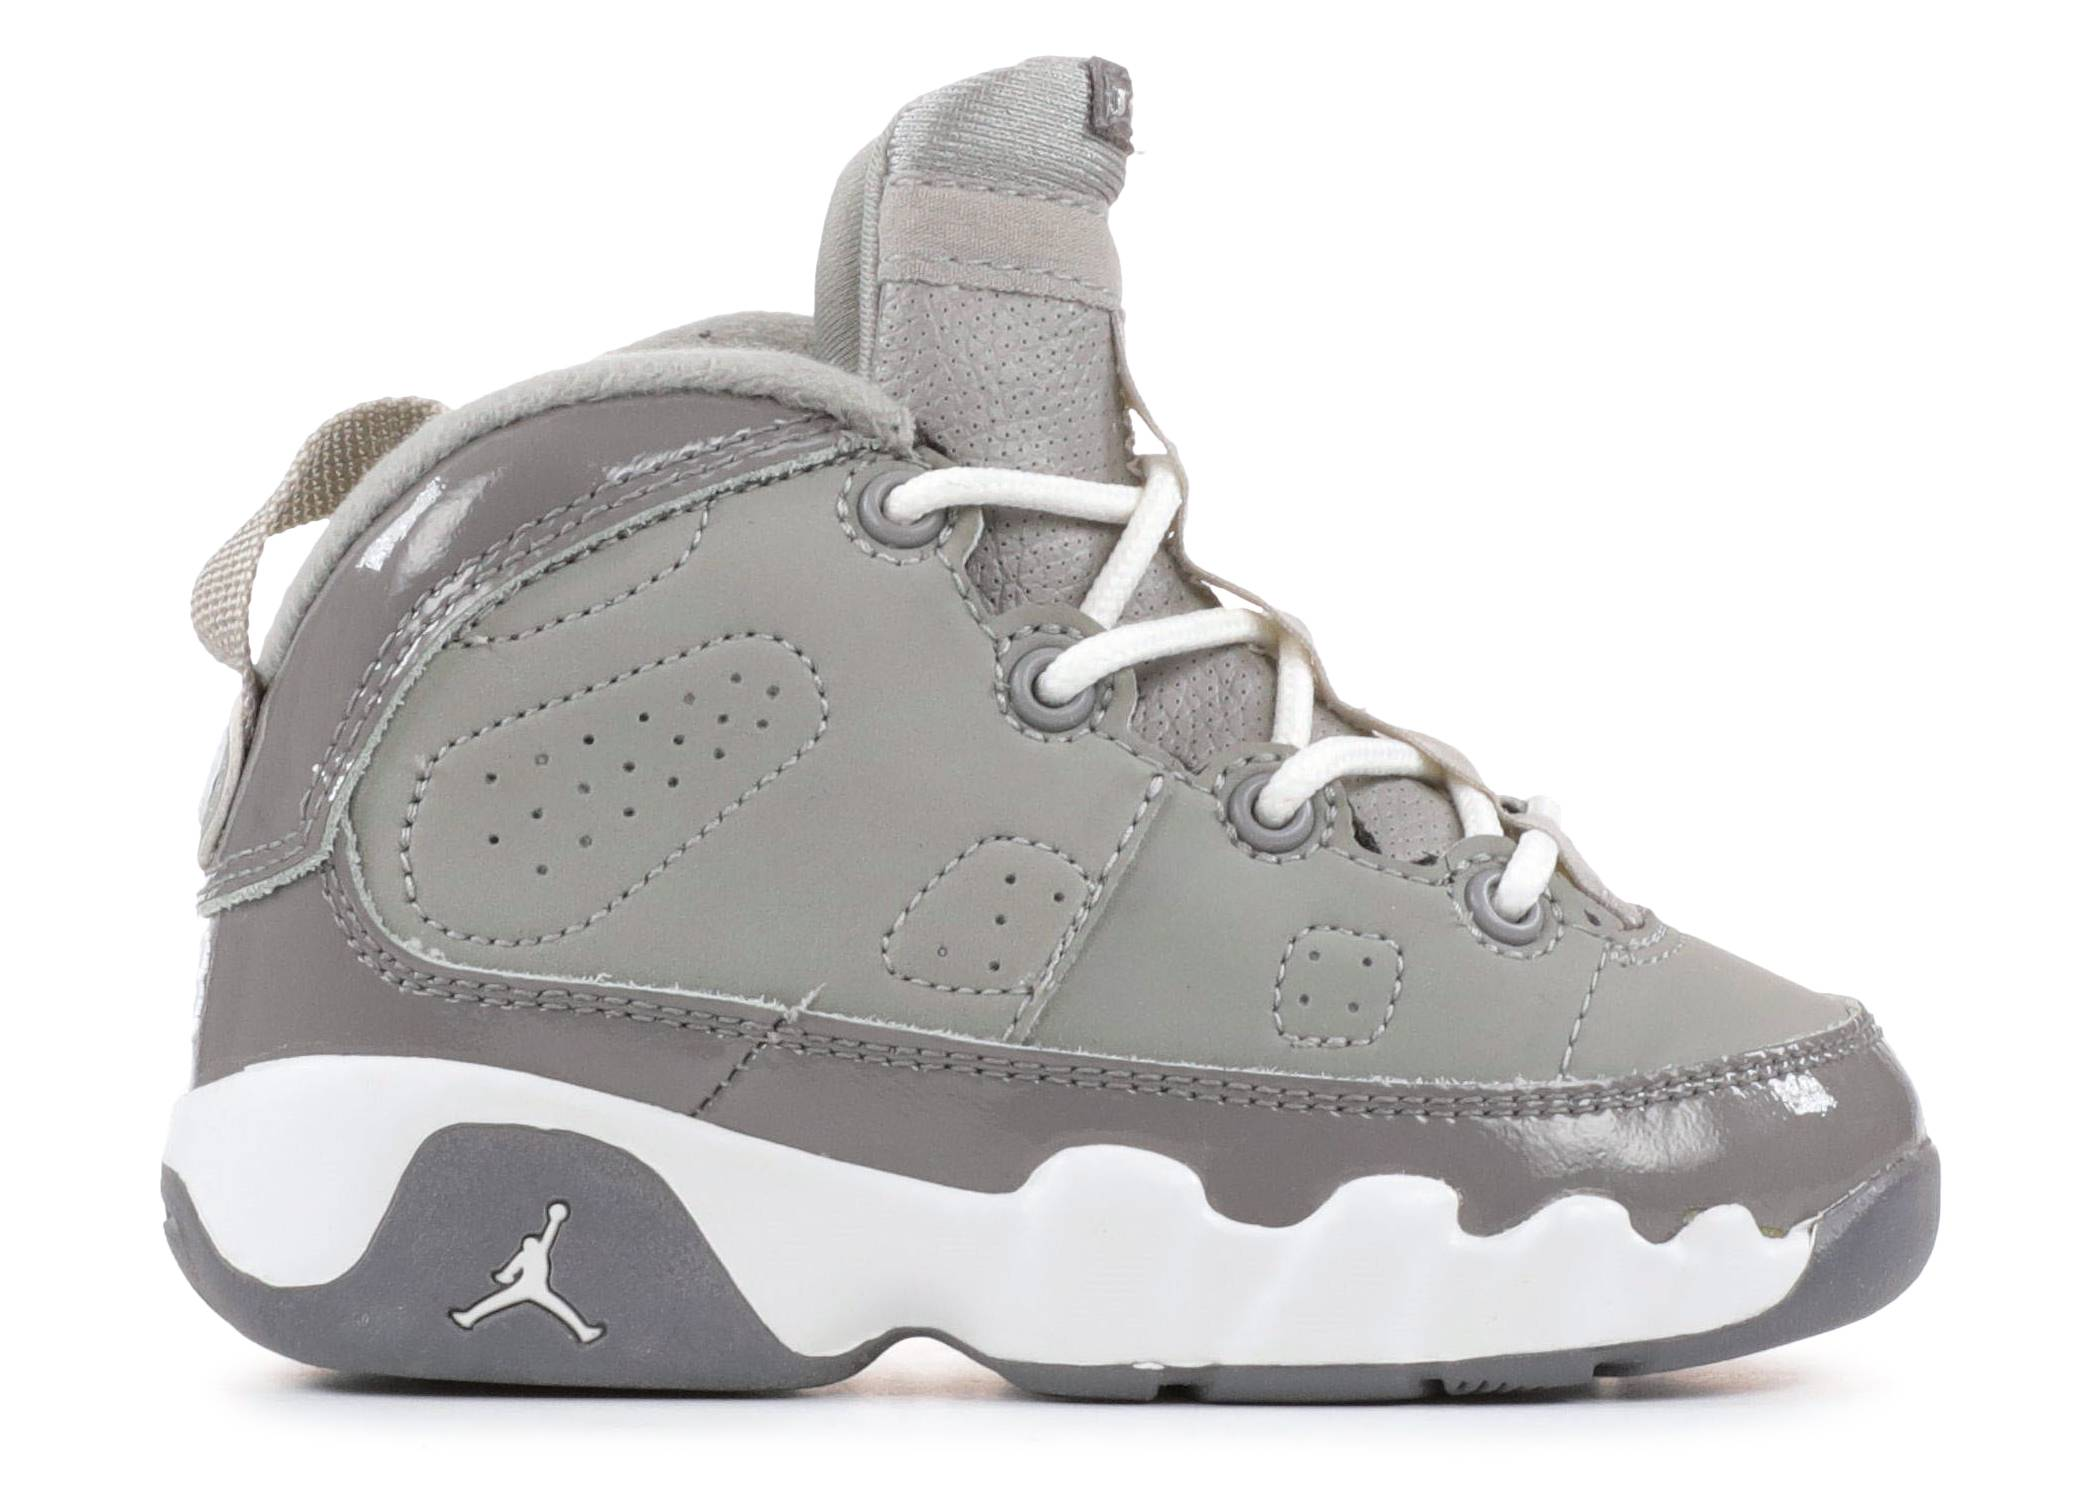 low priced 2f903 58c1e baby jordan 9 retro infant